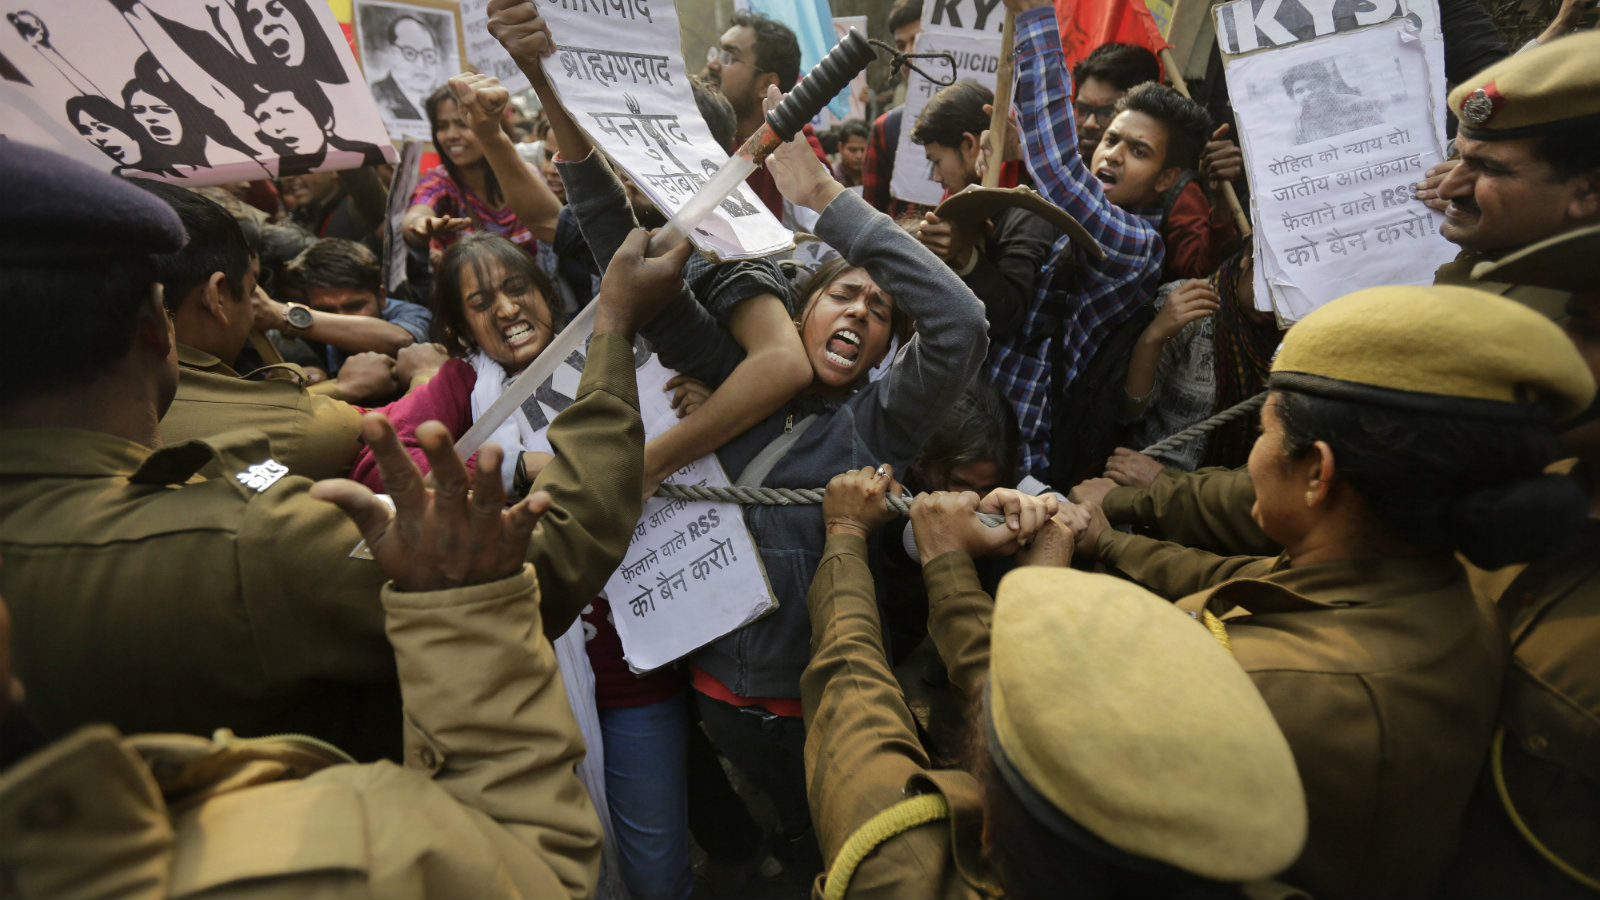 Policemen try to stop Indian students as they march towards the office of Hindu nationalist Rashtriya Swayamsevak Sangh (RSS) or the National Volunteers Association's office during a protest against the death of 26-year-old doctoral student Rohith Vemula in New Delhi, India, Saturday, Jan. 30, 2016. Saturday marked the birthday of Vemula whose body was found hanging in a hostel room, on January 17 weeks after he along with four others, was barred from using some facilities at his university in the southern tech-hub of Hyderabad.